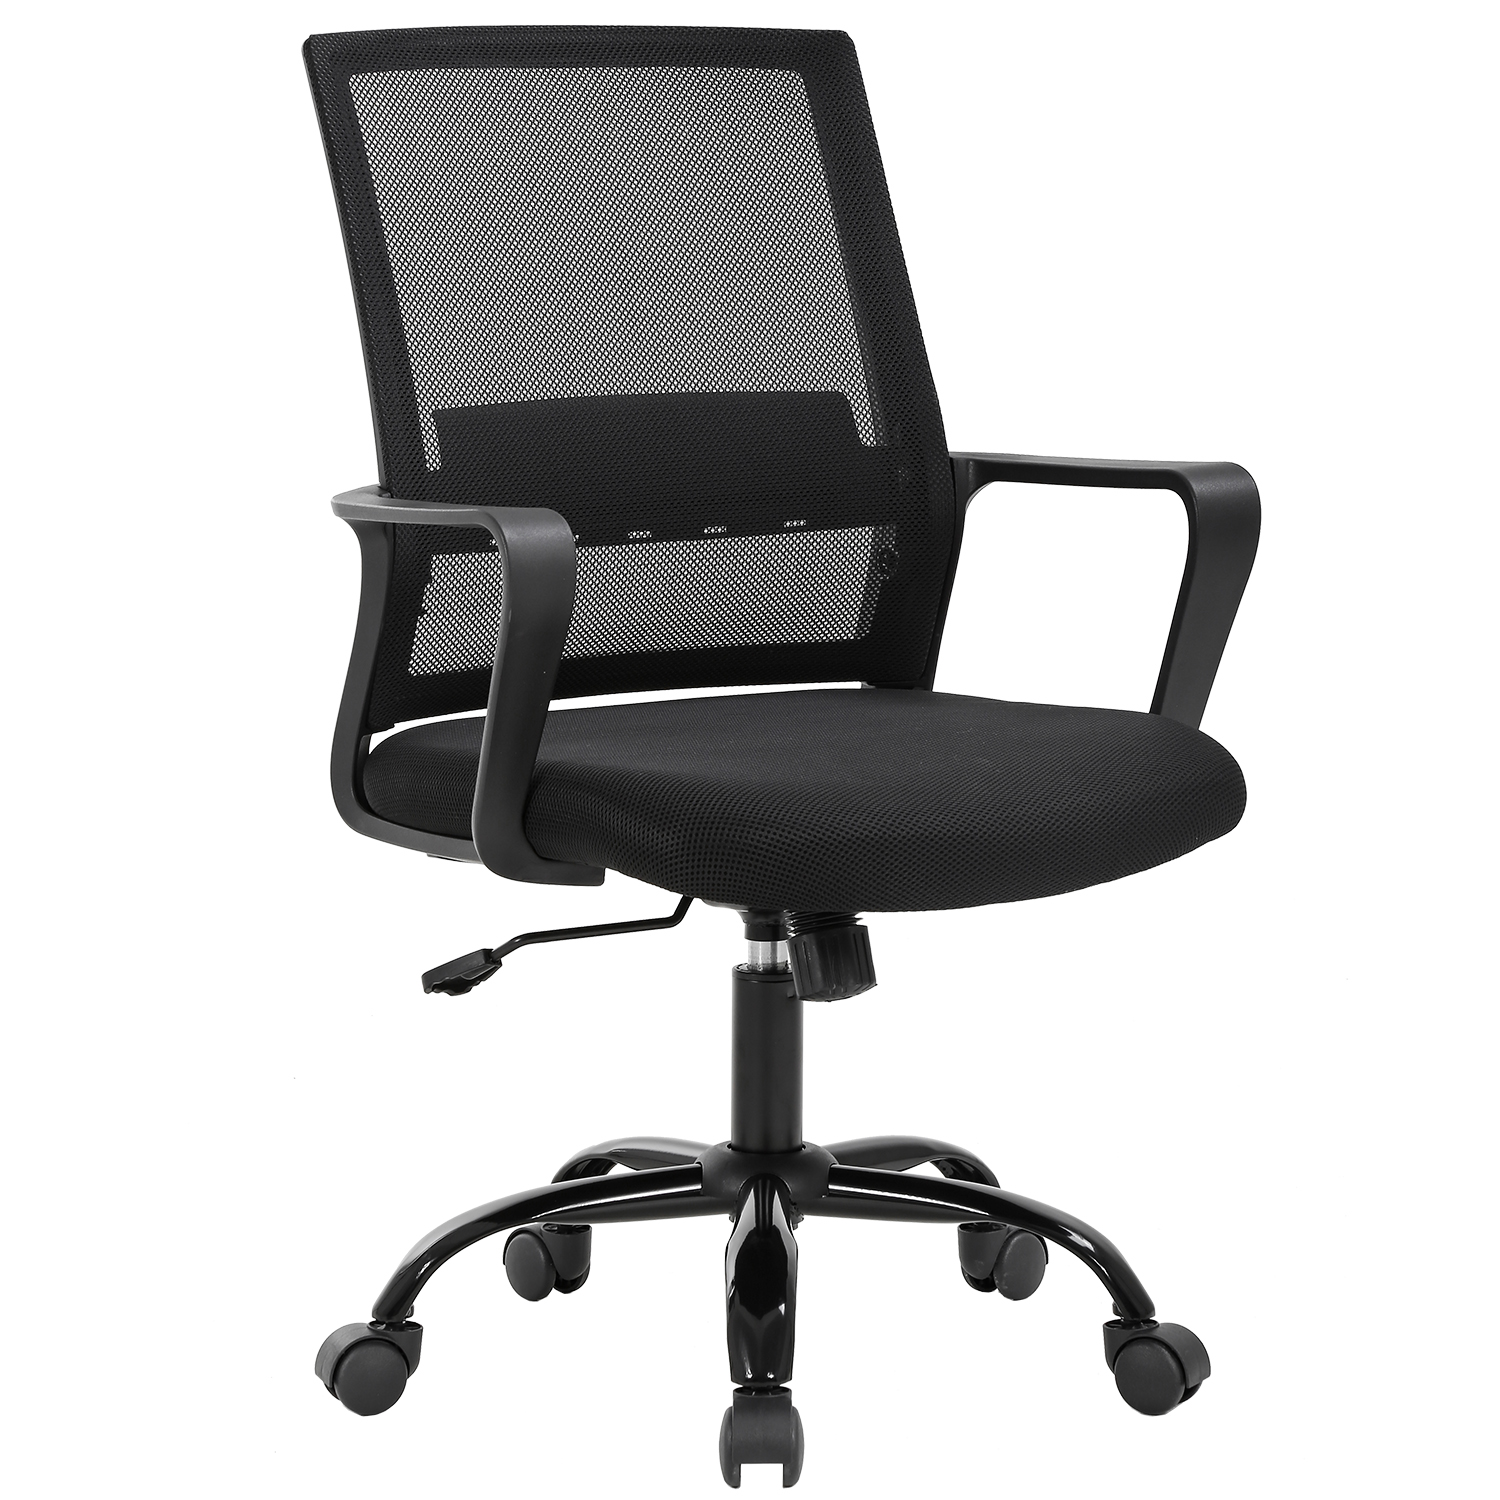 Home Office Chair Ergonomic Cheap Desk Chair Swivel Rolling Computer Chair Executive Lumbar Support Task Mesh Chair Adjustable Stool For Women Men Black Walmart Com Walmart Com